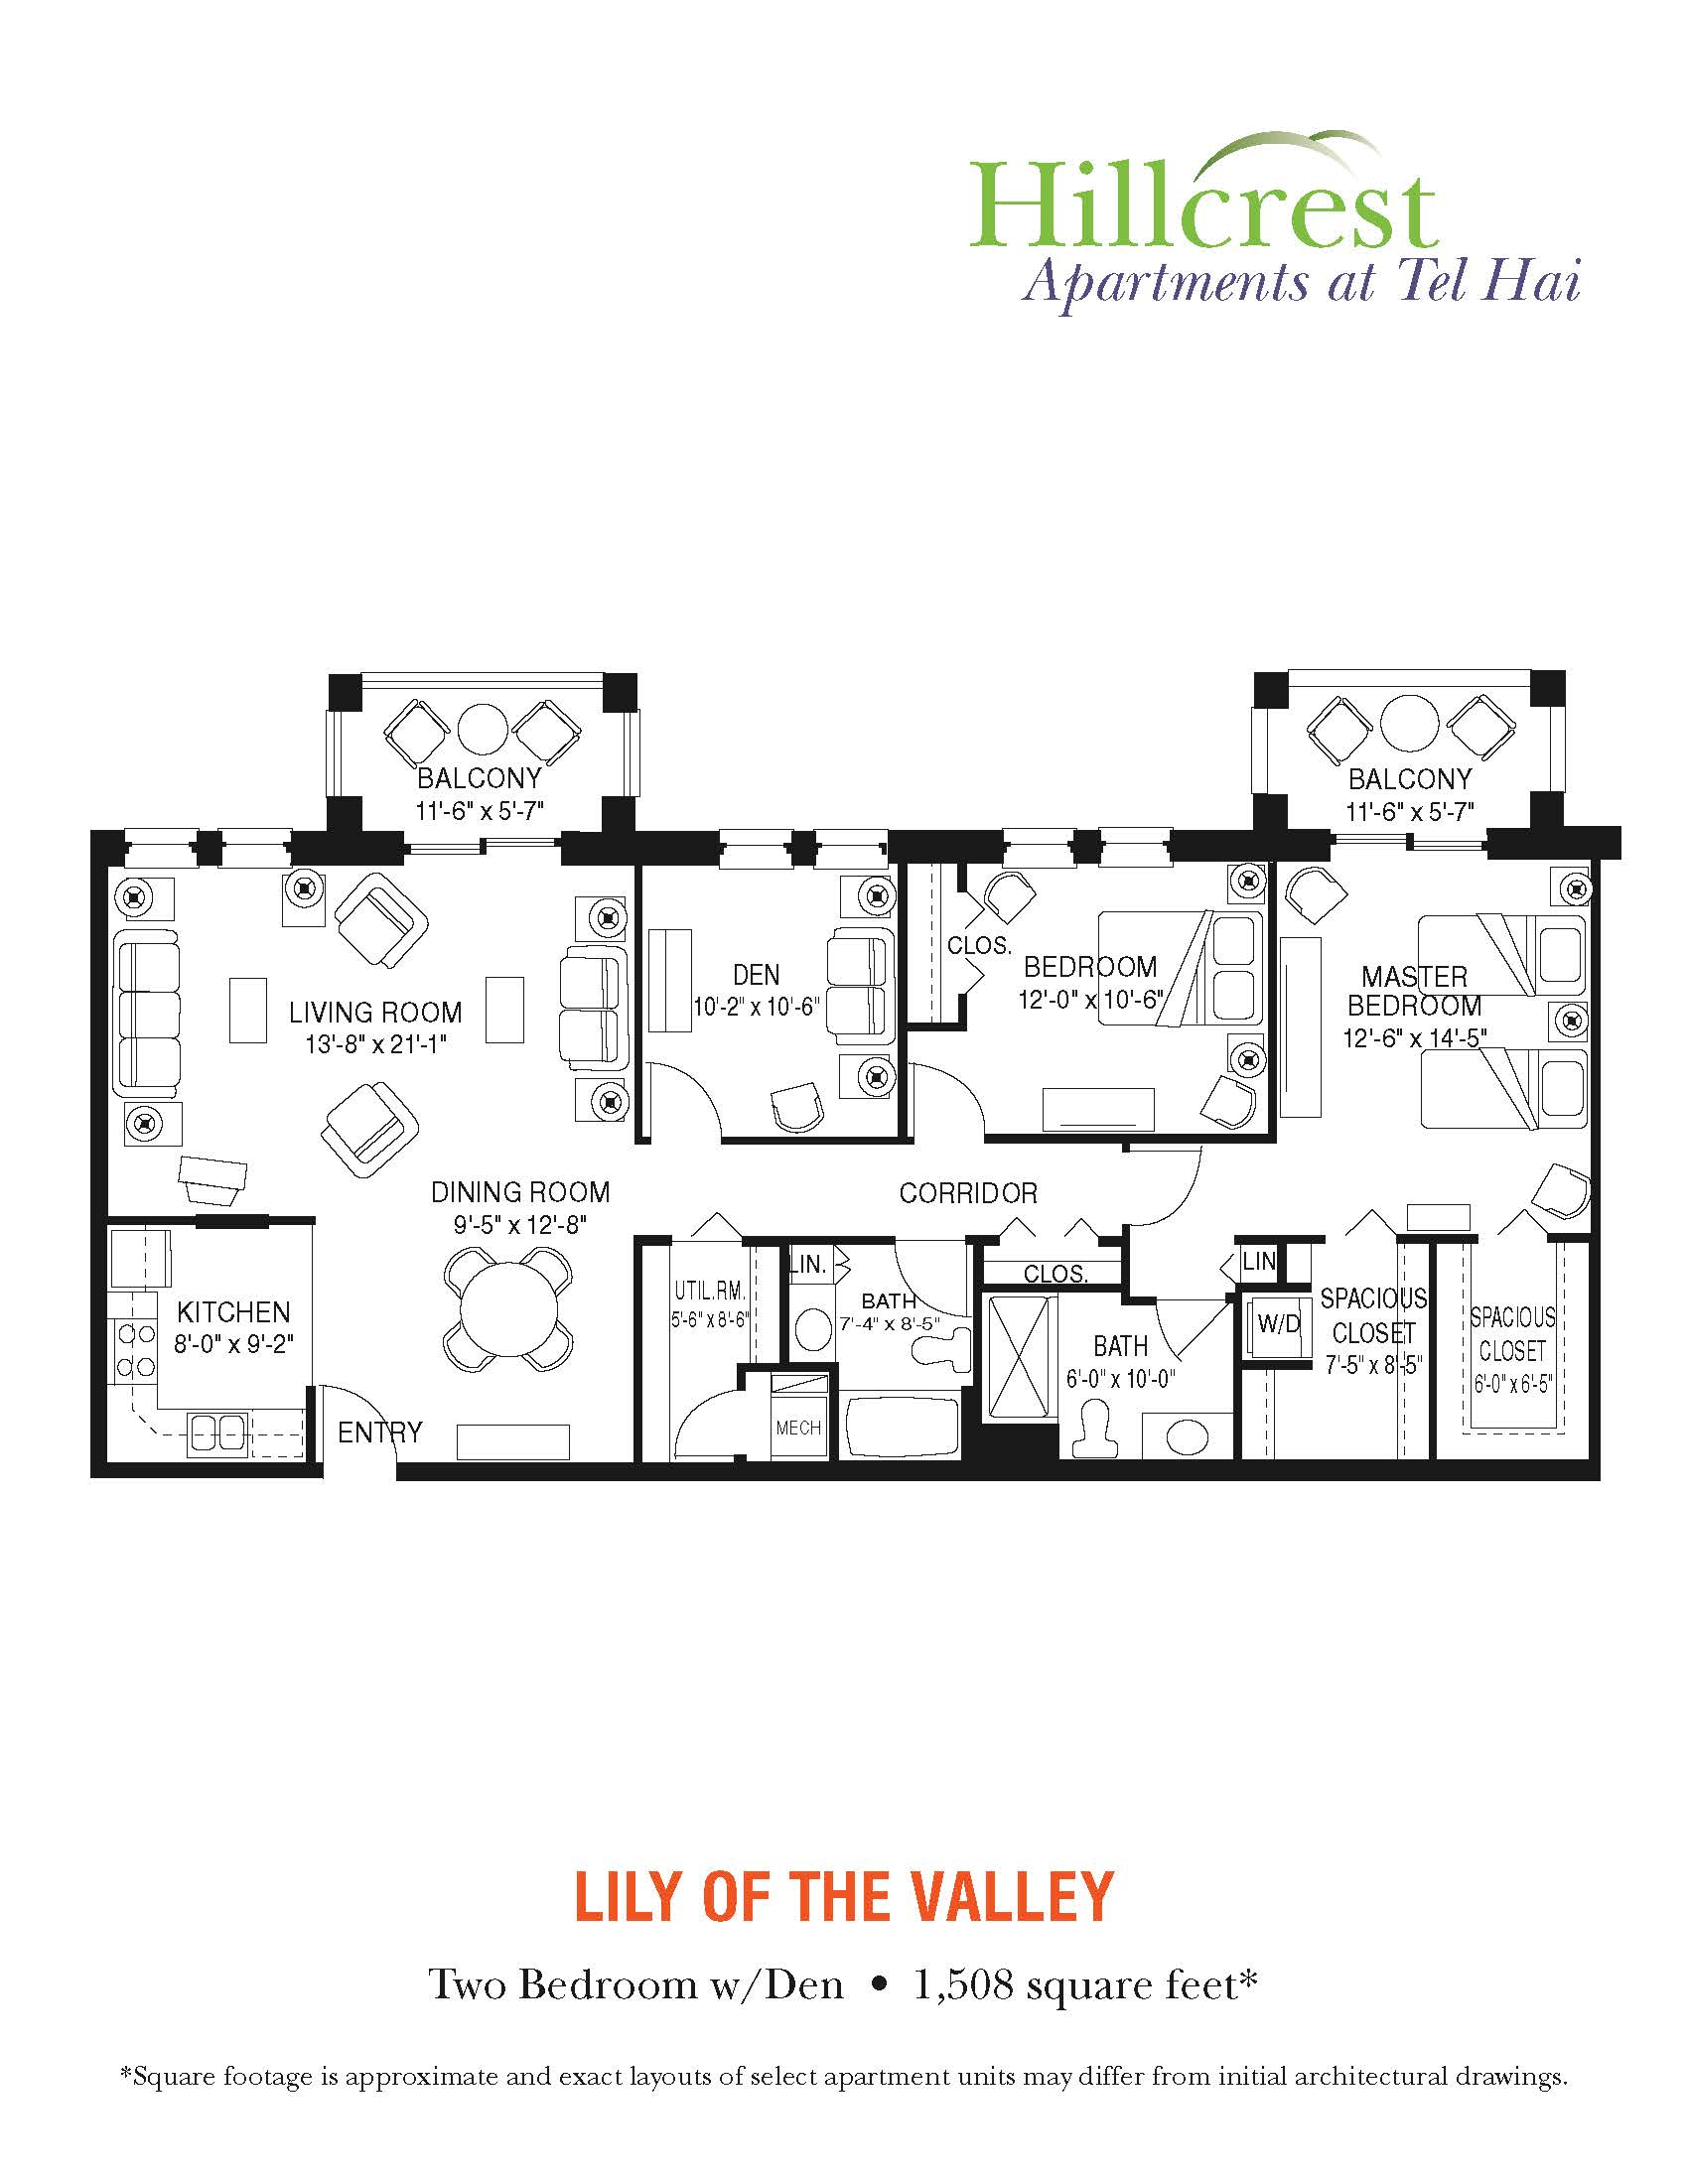 Lily of the Valley Apartment at Tel Hai